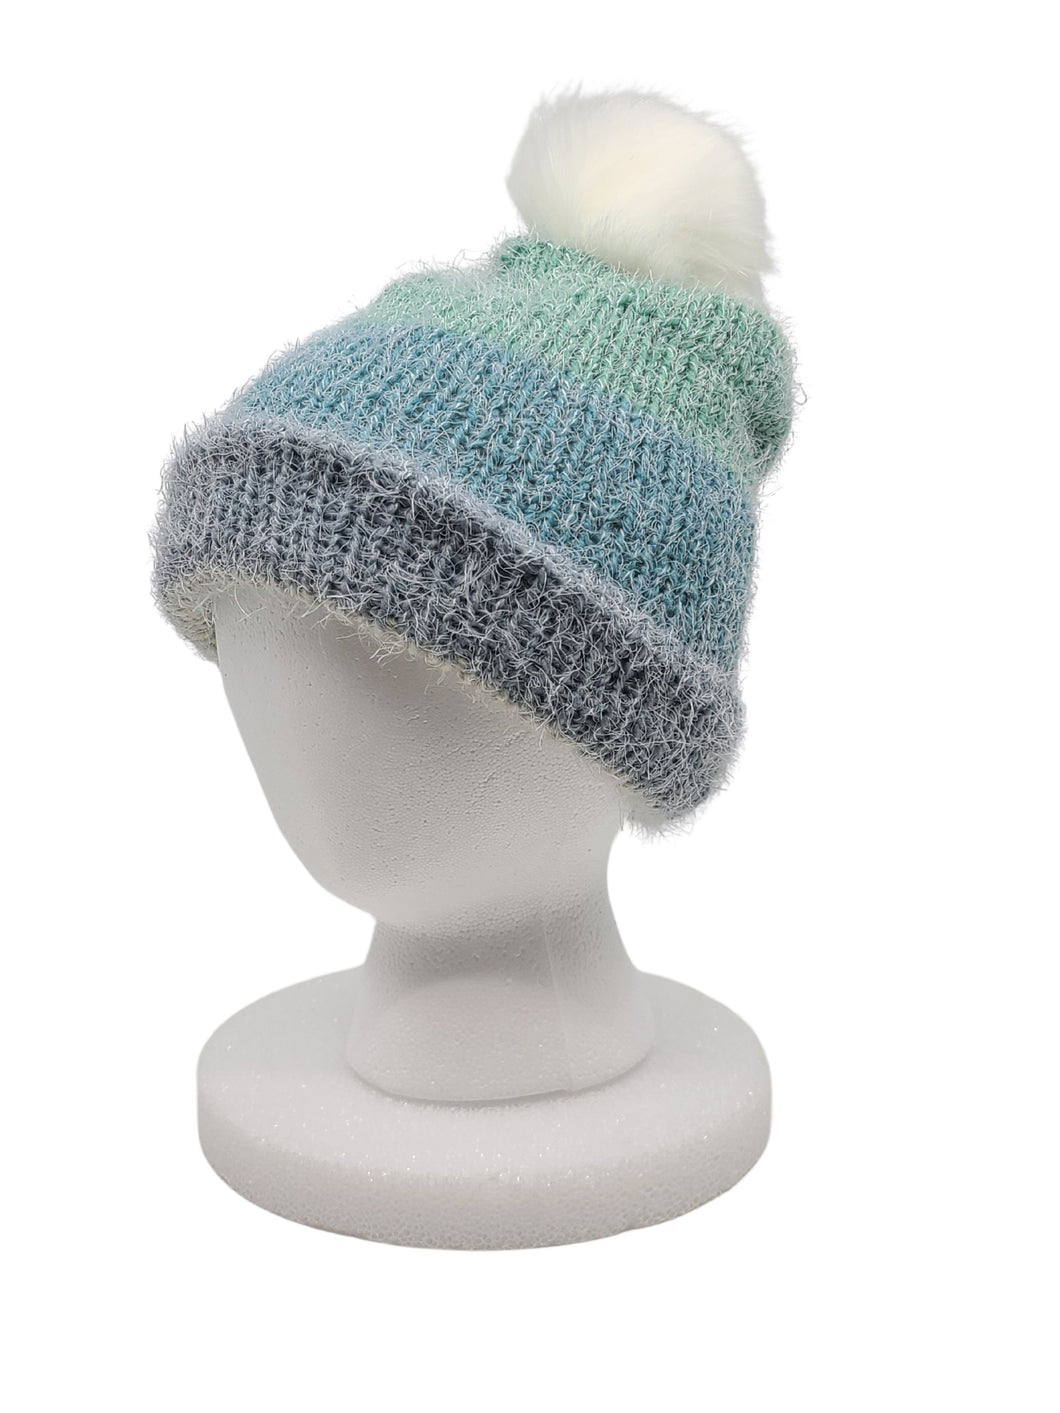 Beanie Hand Knit Hat- Teal Dreams Softie Slouchy Beanies Luckyknitsshop